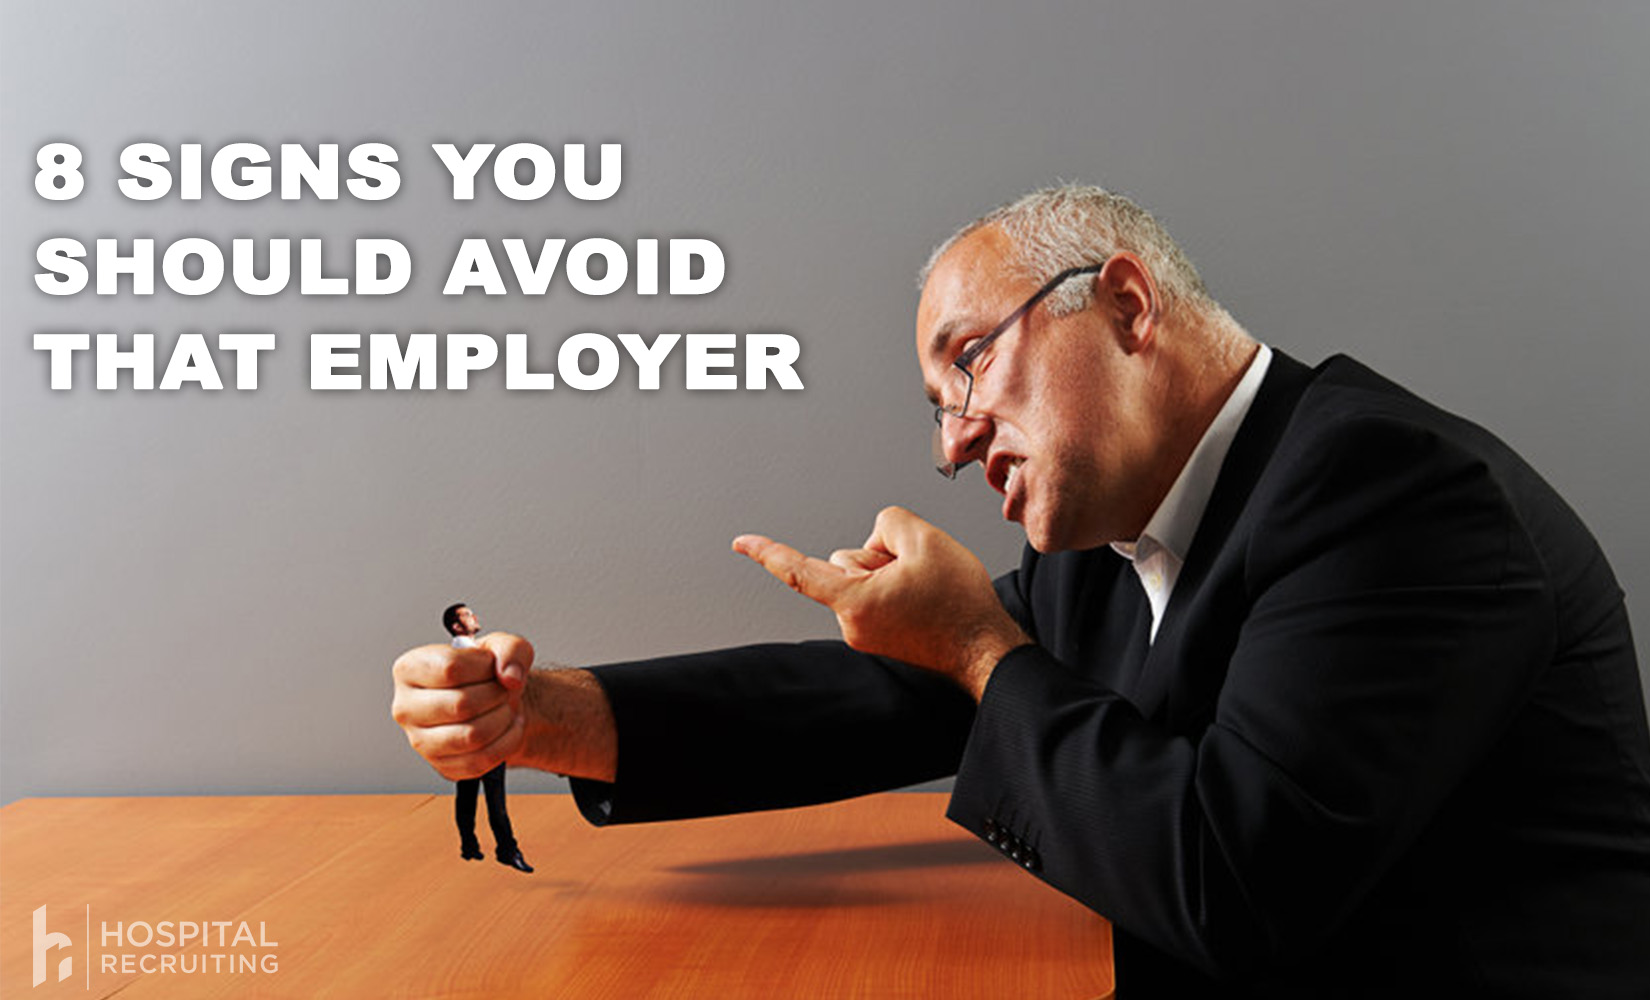 8 Signs You Should Avoid That Potential Employer thumbnail image